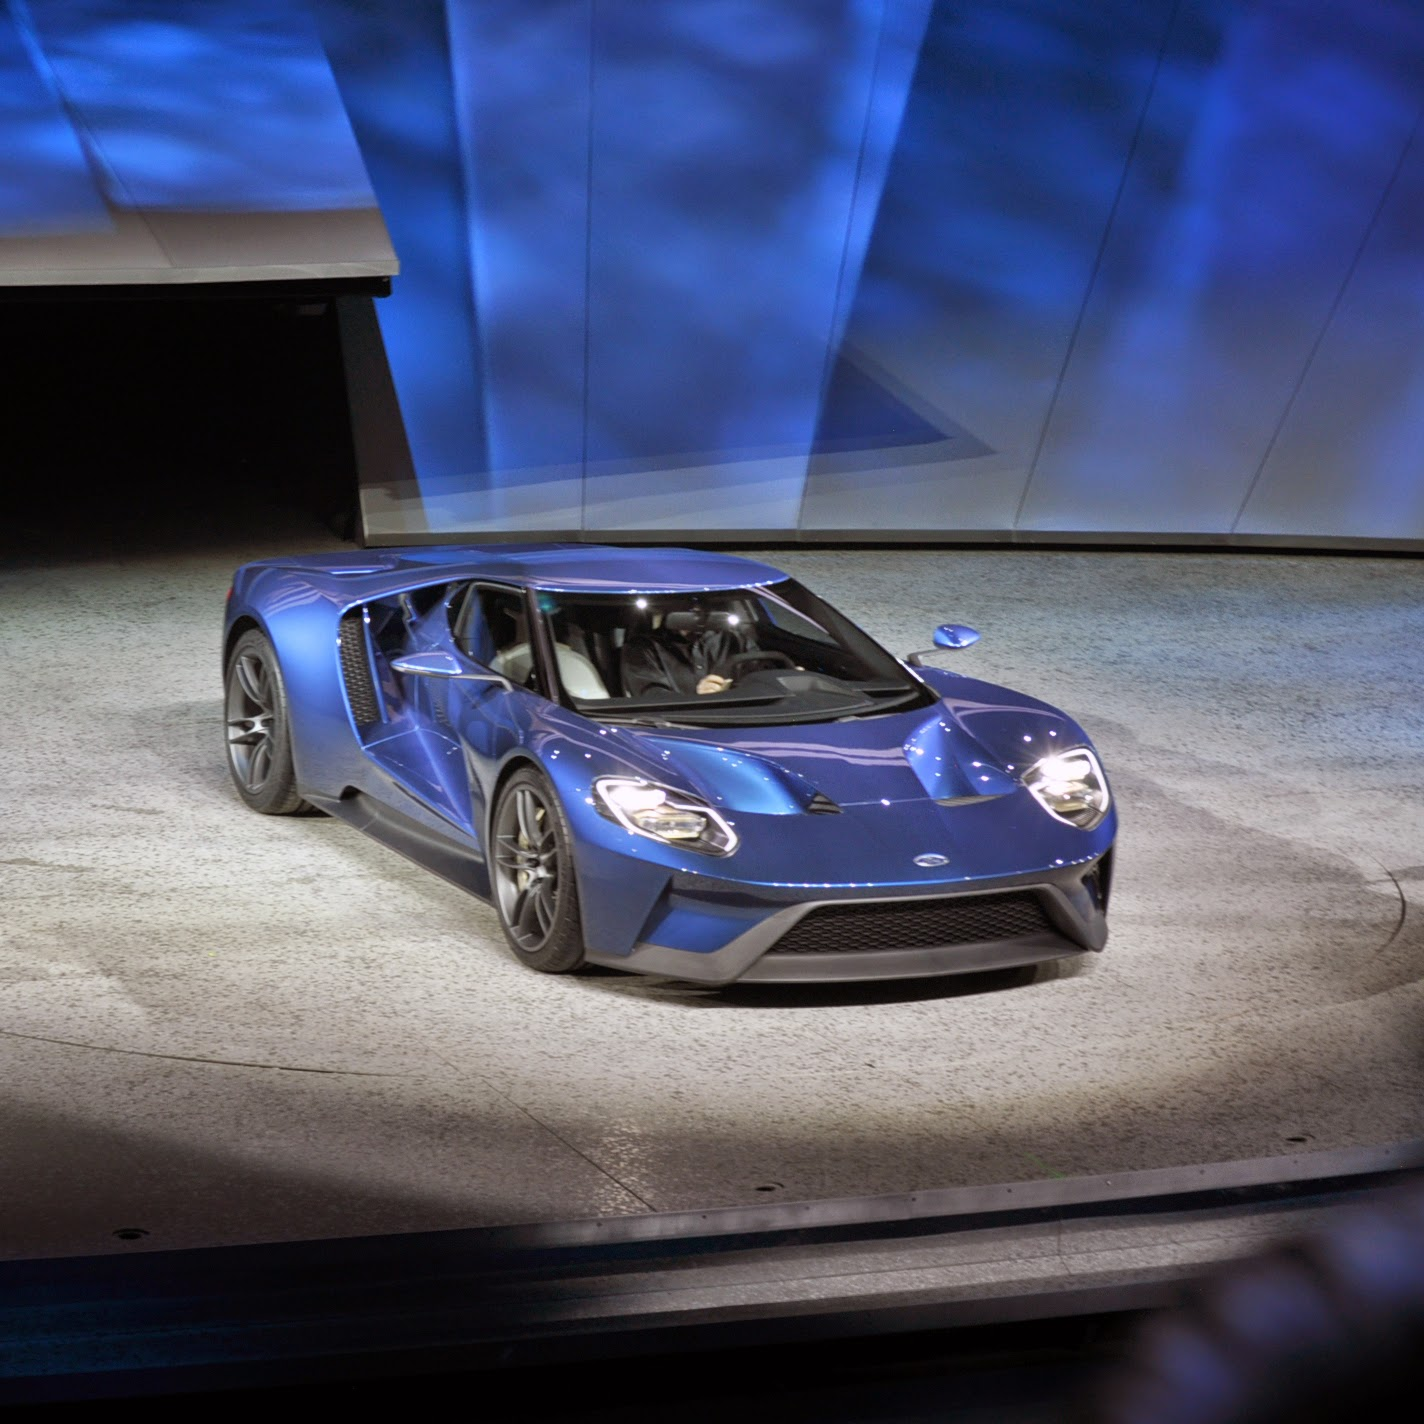 Industrial Design In Victoria Australia: Ford GT Supercar